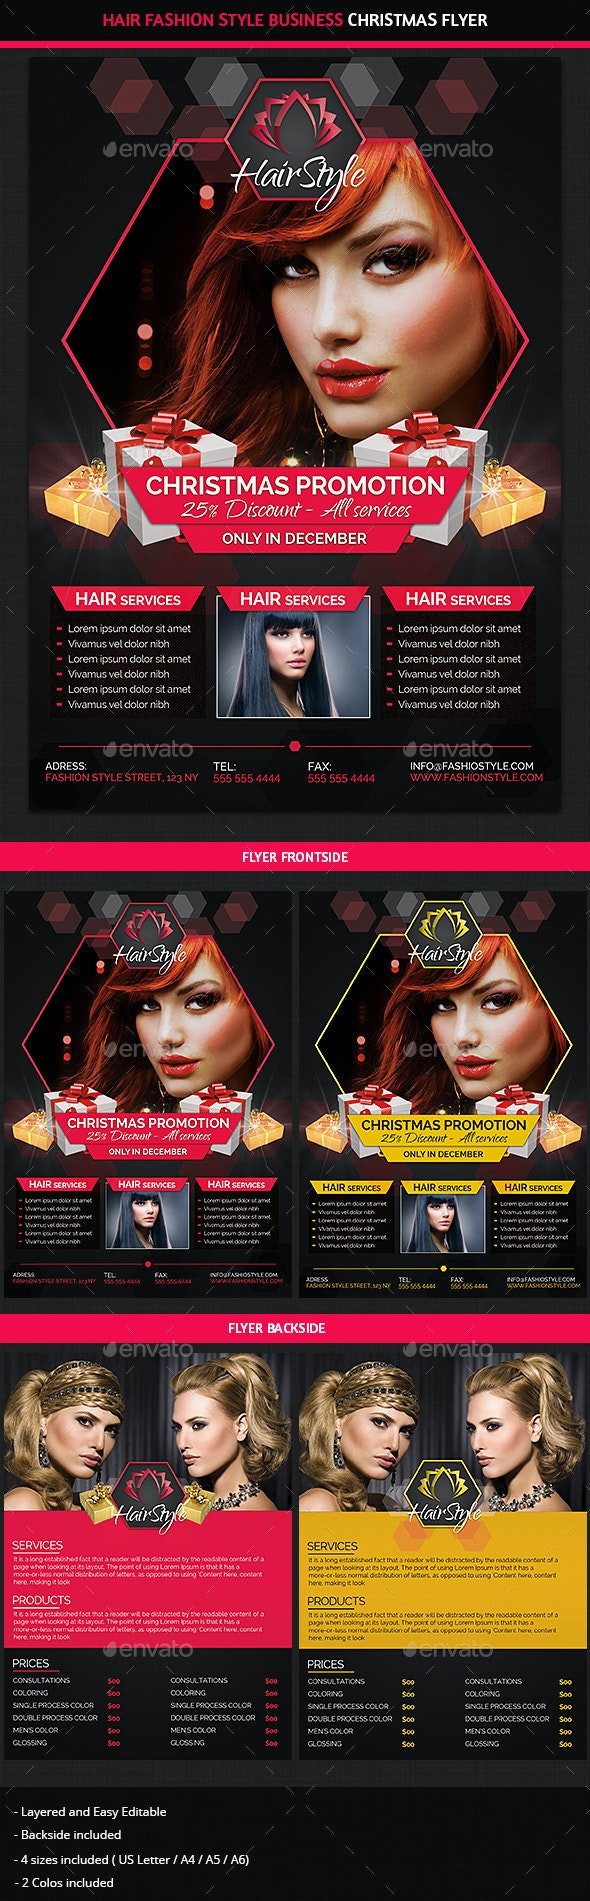 Hair Salon Christmas Promotions Commerce Flyer - Commerce Flyers